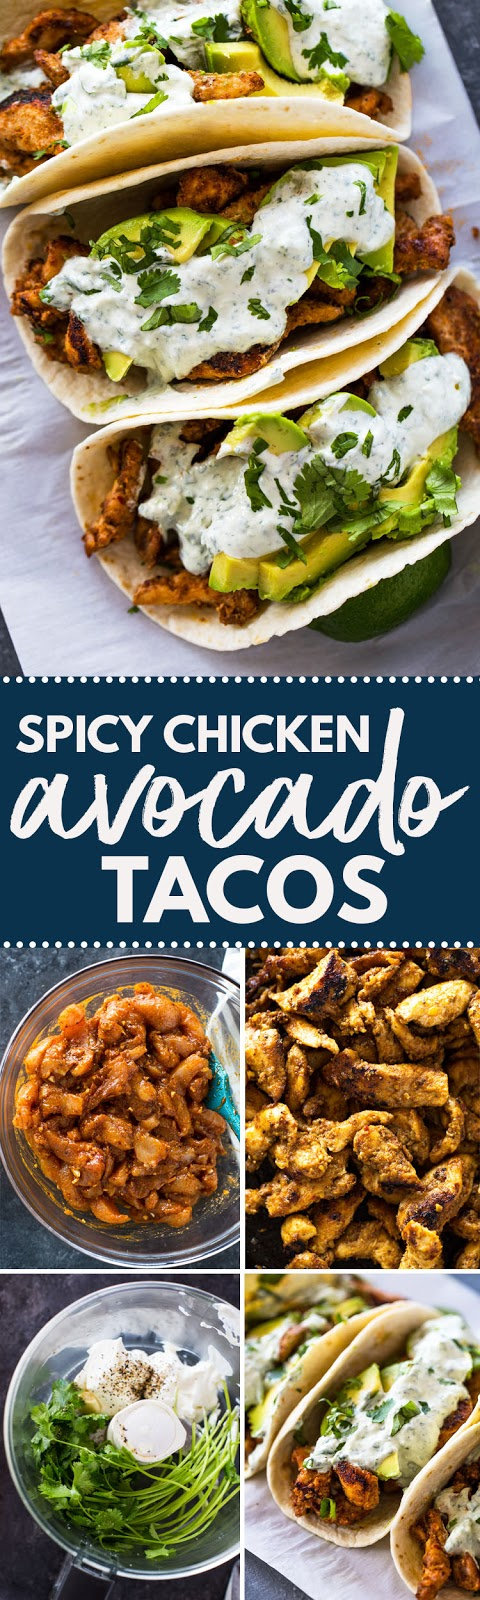 Spicy Chicken and Avocado tacos with Creamy Cilantro Lime Sauce